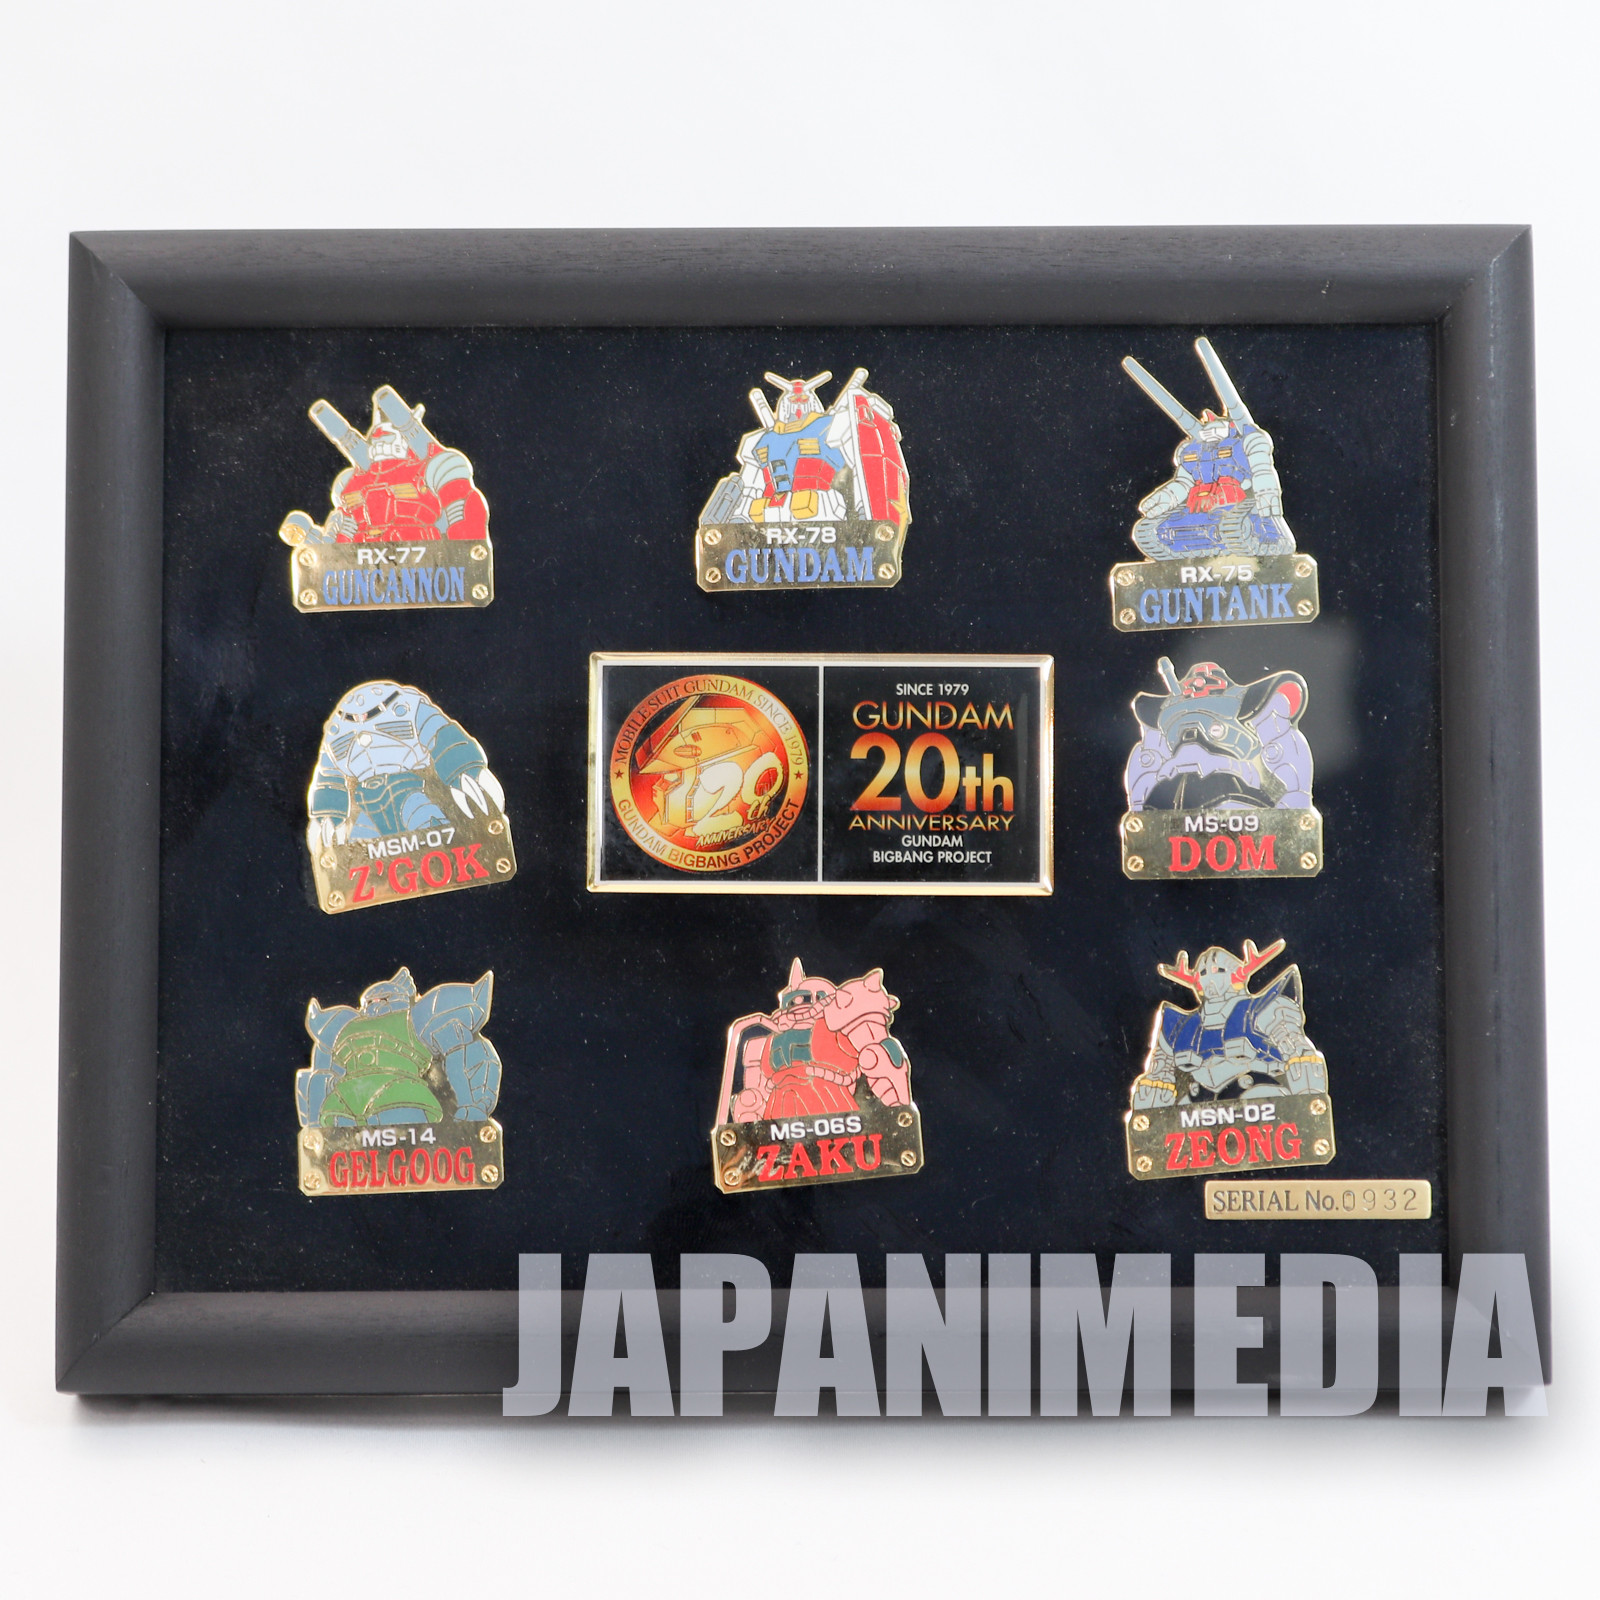 Gundam 20th Anniversary Limited 10pc Pins Set JAPAN ANIME